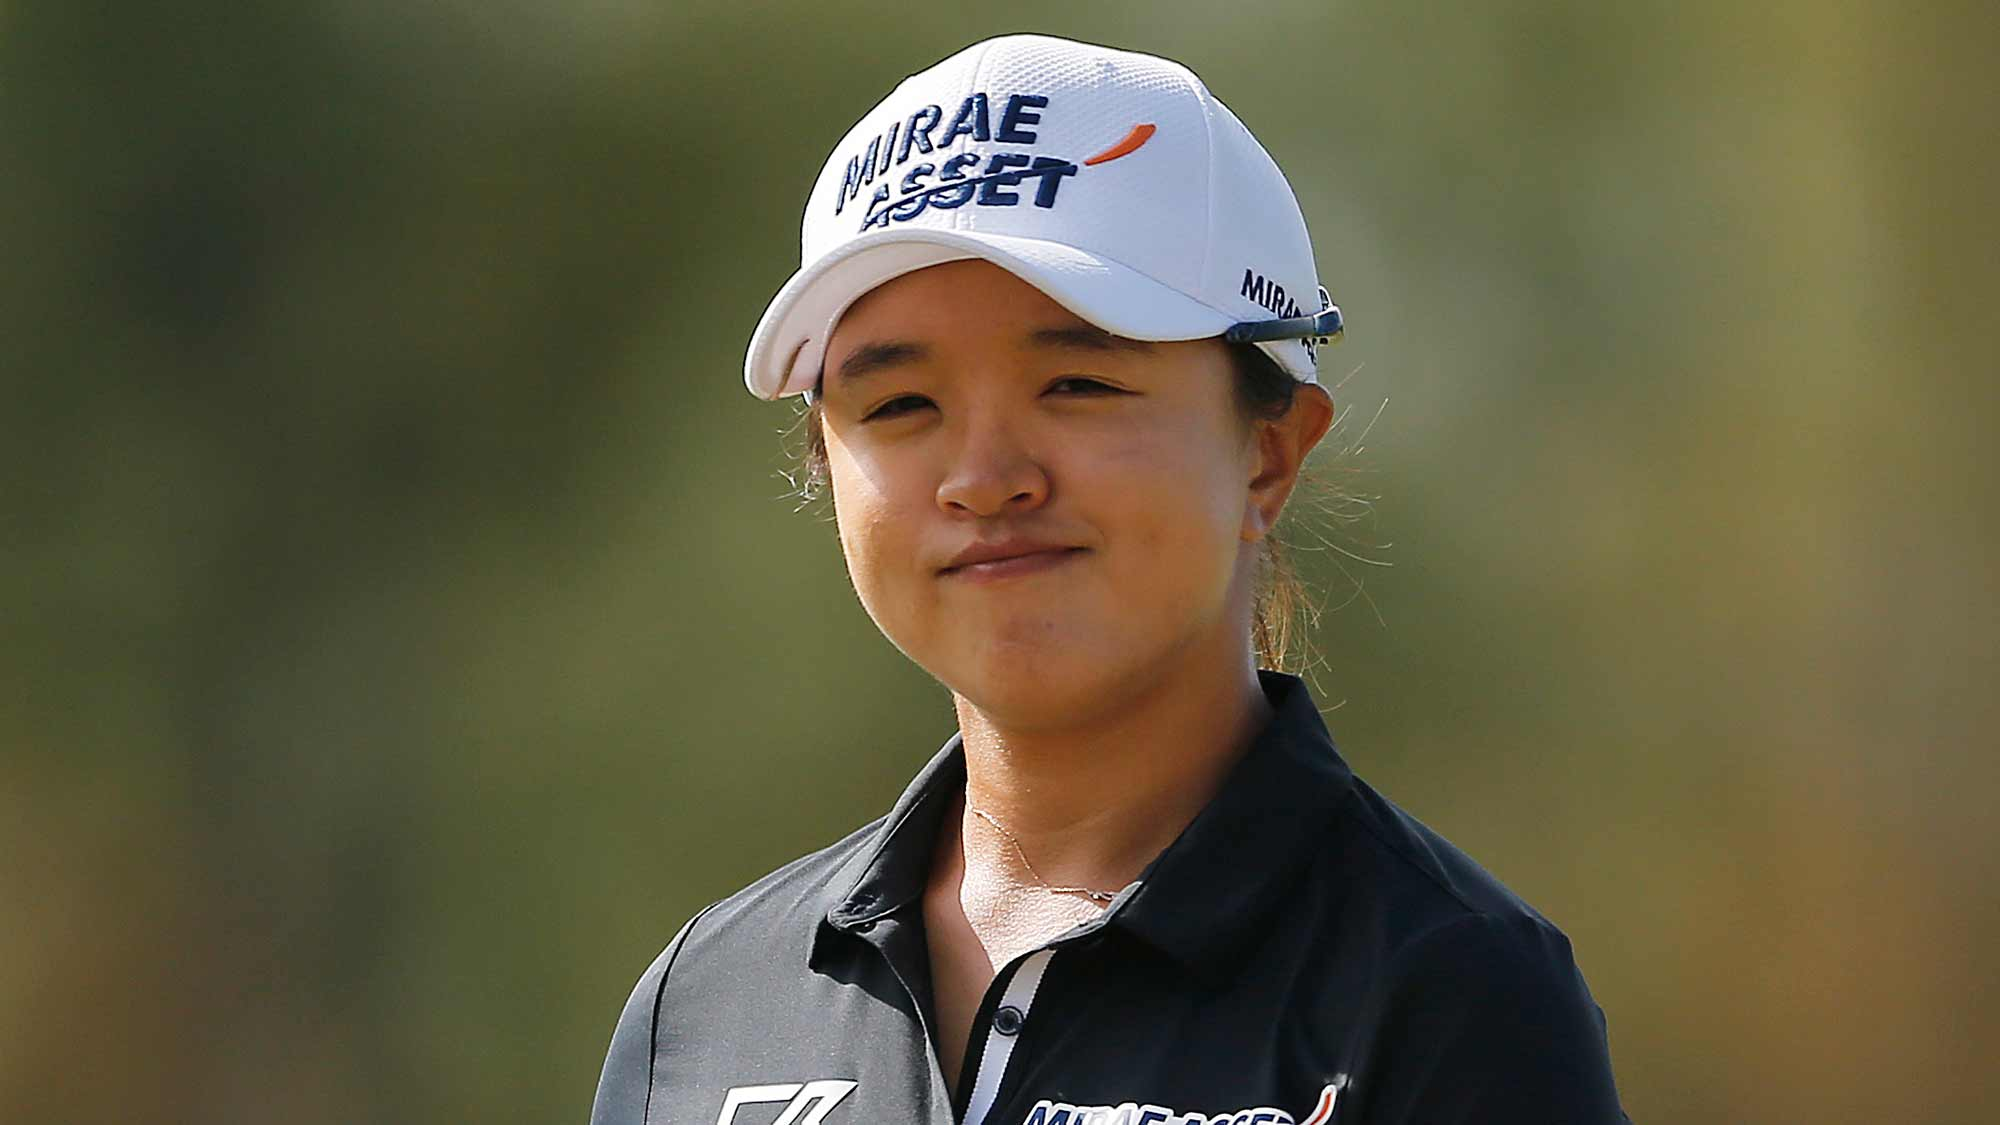 Sei Young Kim of South Korea reacts after a putt on the first green during the final round of the CME Group Tour Championship at Tiburon Golf Club on November 24, 2019 in Naples, Florida